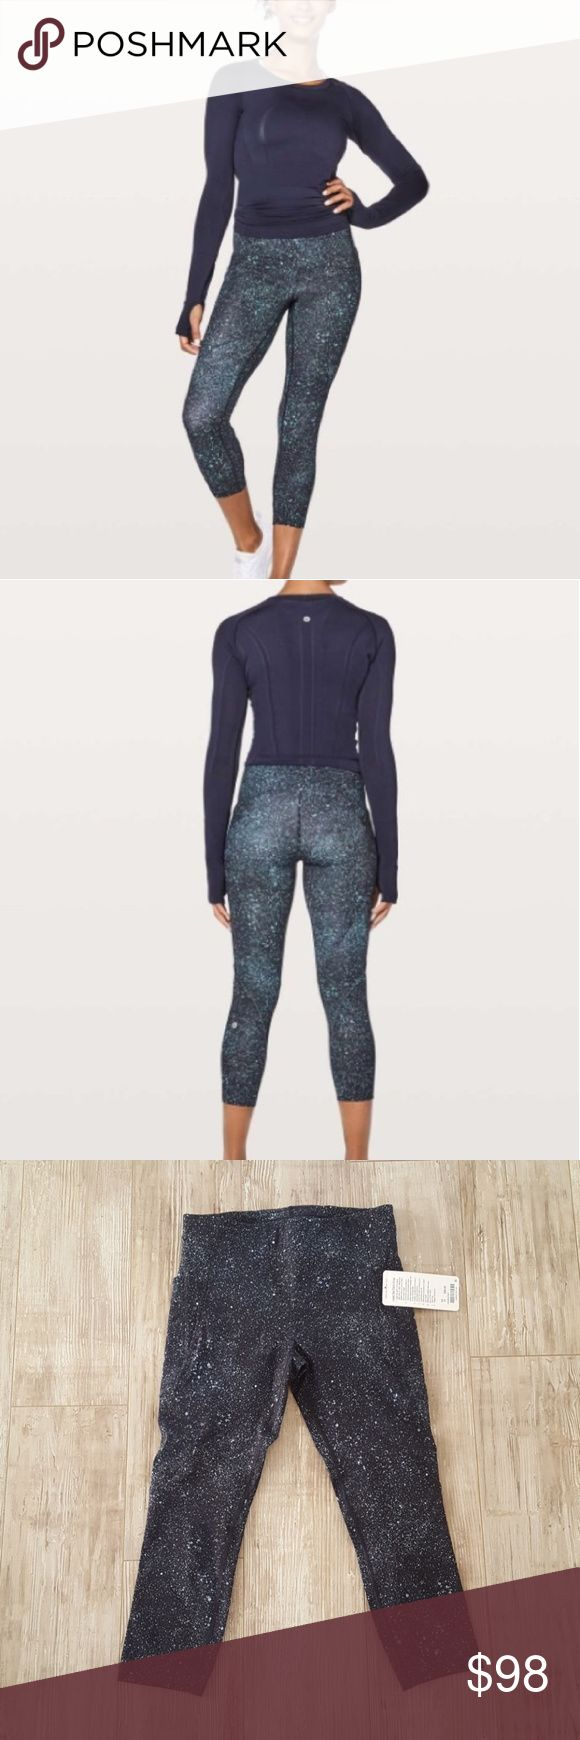 """💘SALE💘 Lululemon """"Lead the Pack"""" Crop Pants Purchased BNWT from a posher and was gifted, but person did not like the print. Id rather sell for my money back. Crop style with side pockets. Wide thick waistband to cover tummy. Cute black, dark blue, white speckled print. Color of pants is best represented in last photo. A must have for you lululemon fans! ;) lululemon athletica Pants Leggings"""